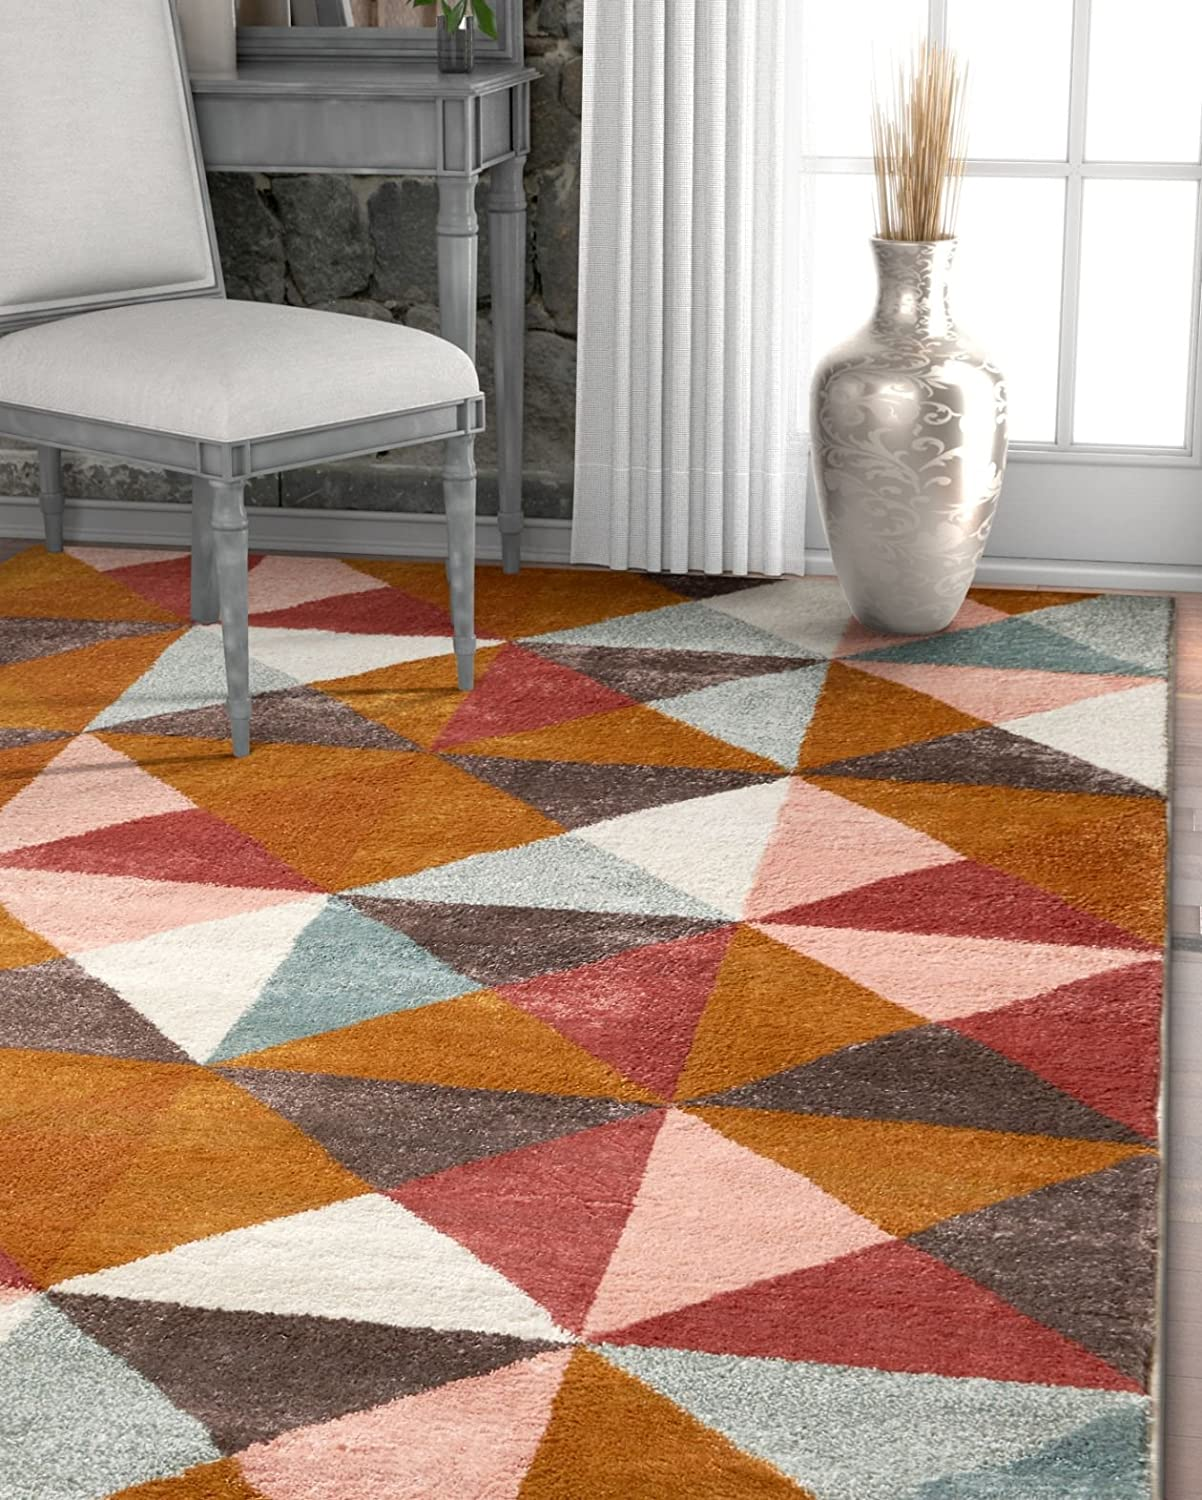 Amazon Com Well Woven Delancey Geometric Multi Red Area Rug 8x11 7 10 X 10 6 Soft Plush Modern Abstract Triangle Boxes Carpet Home Kitchen